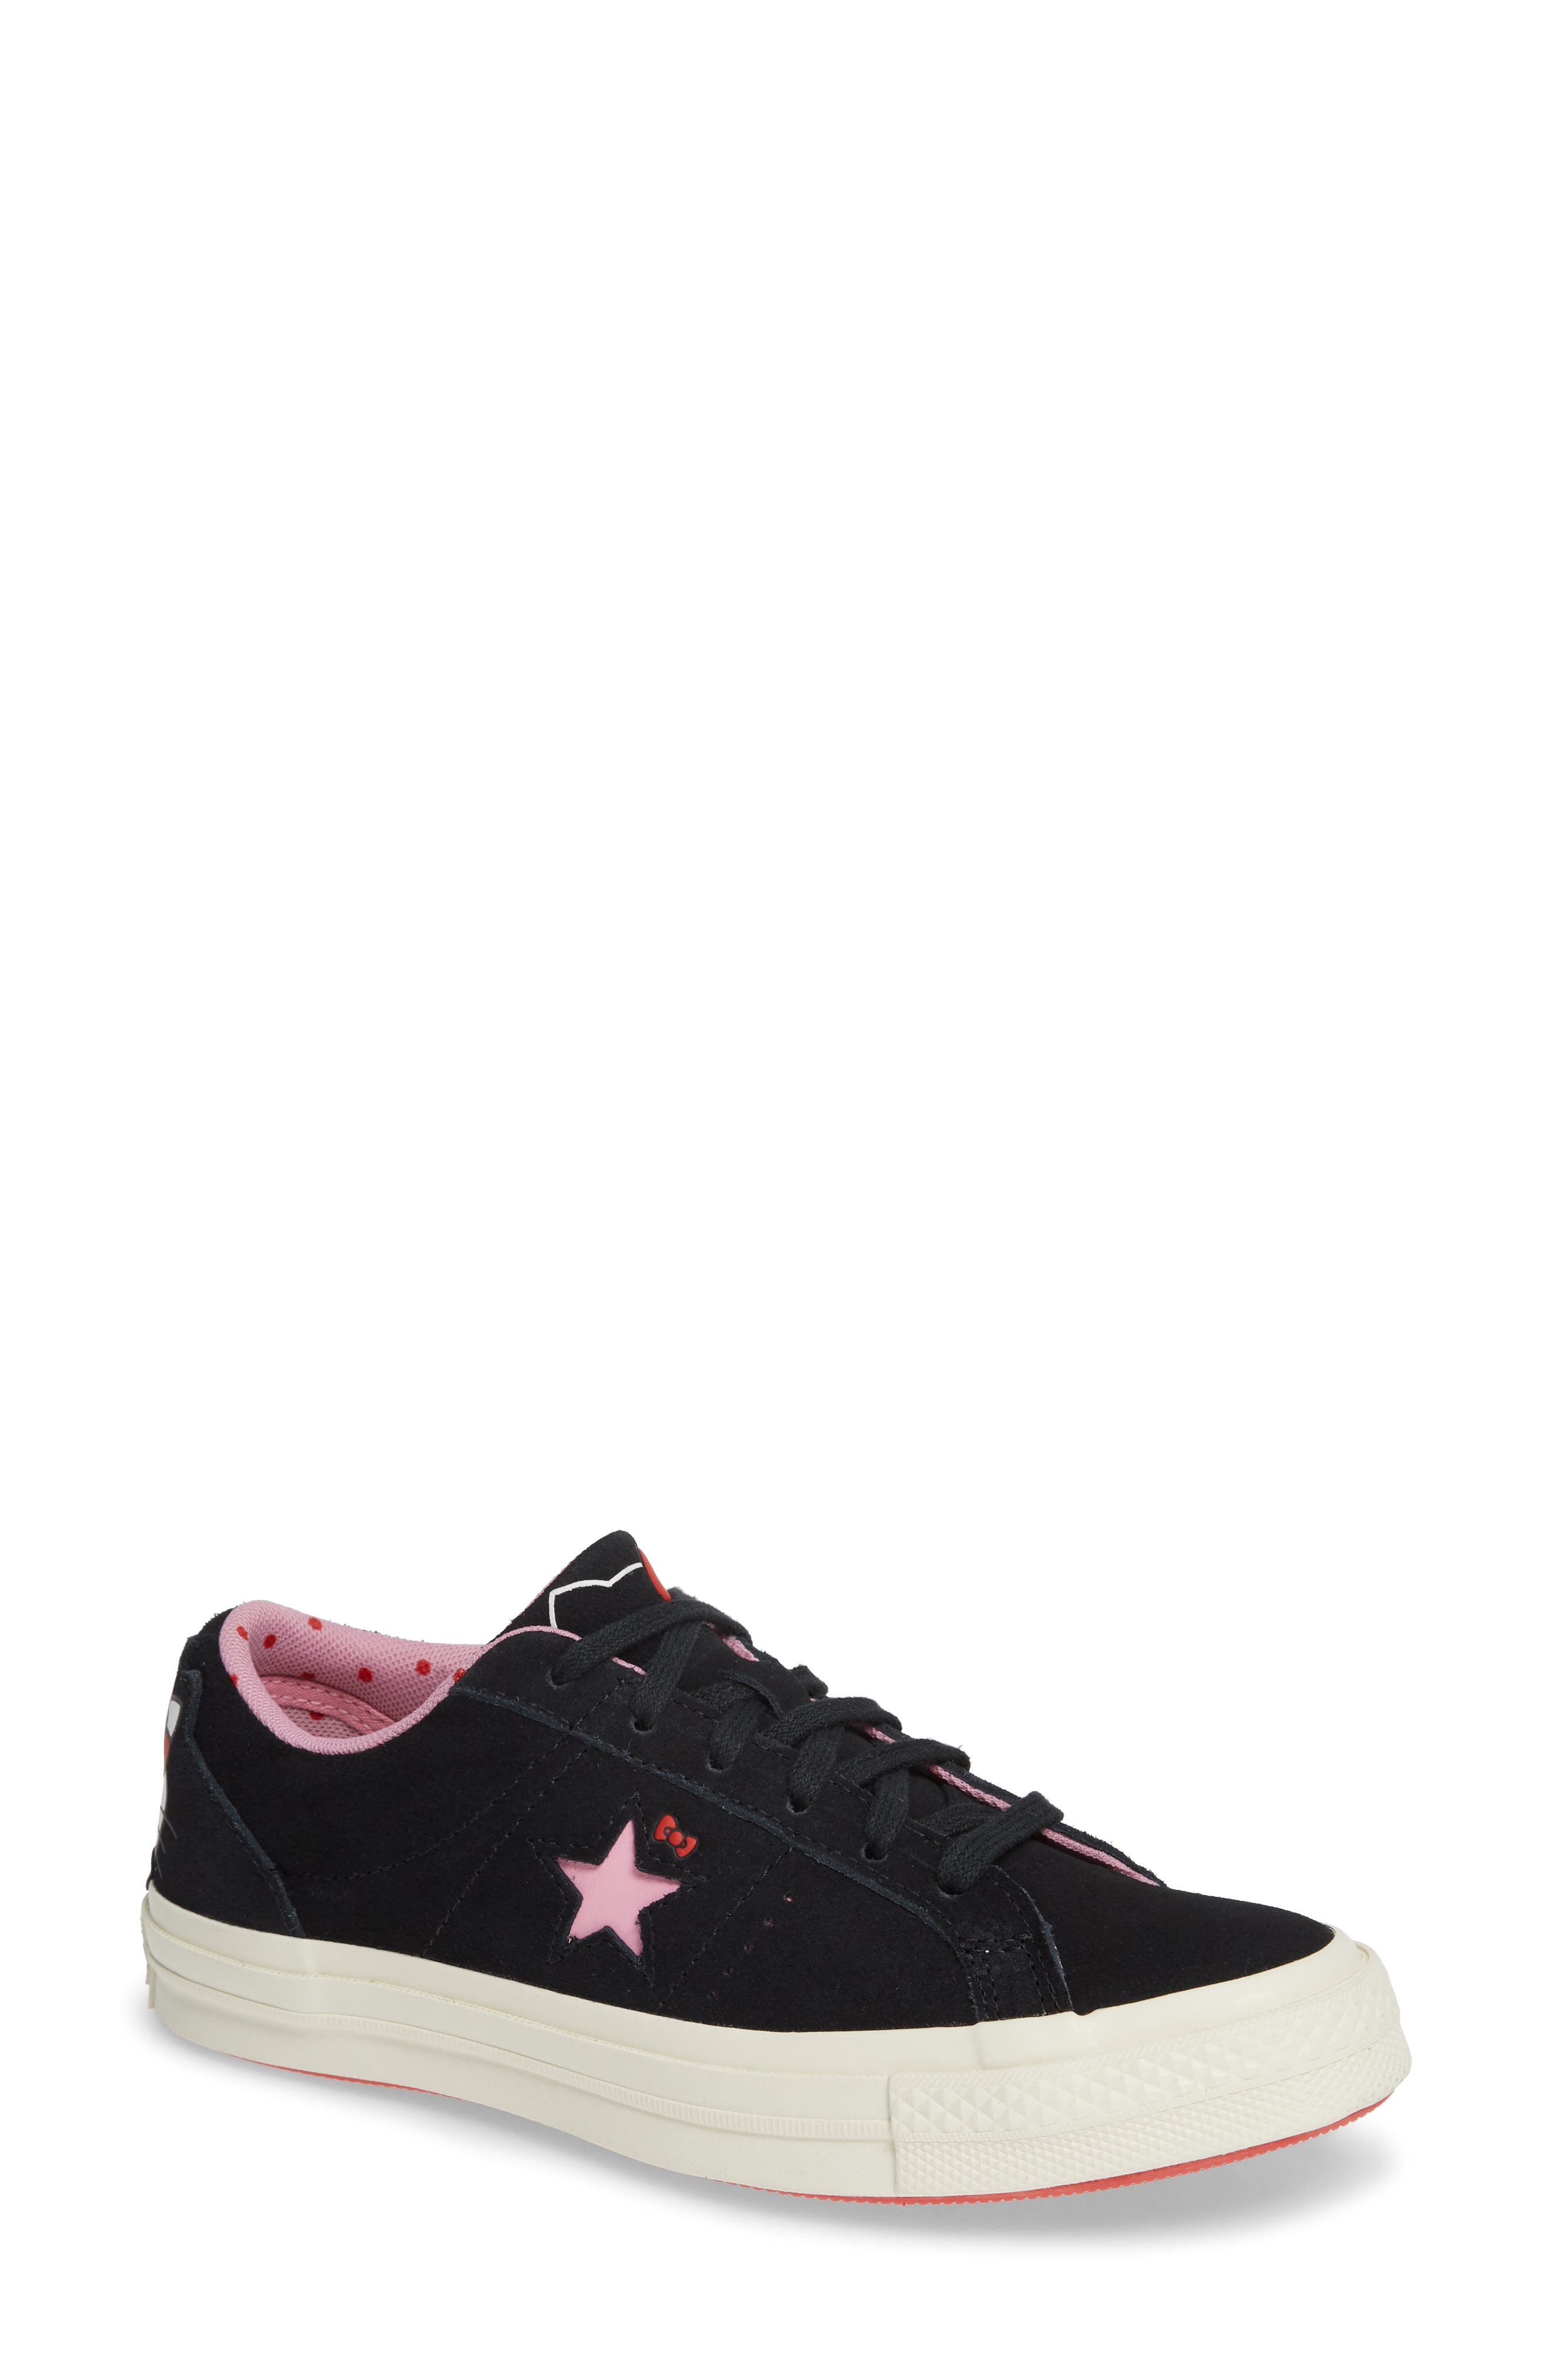 UPC 888756008033 Converse One Star Lo Hello Kitty® Sneaker